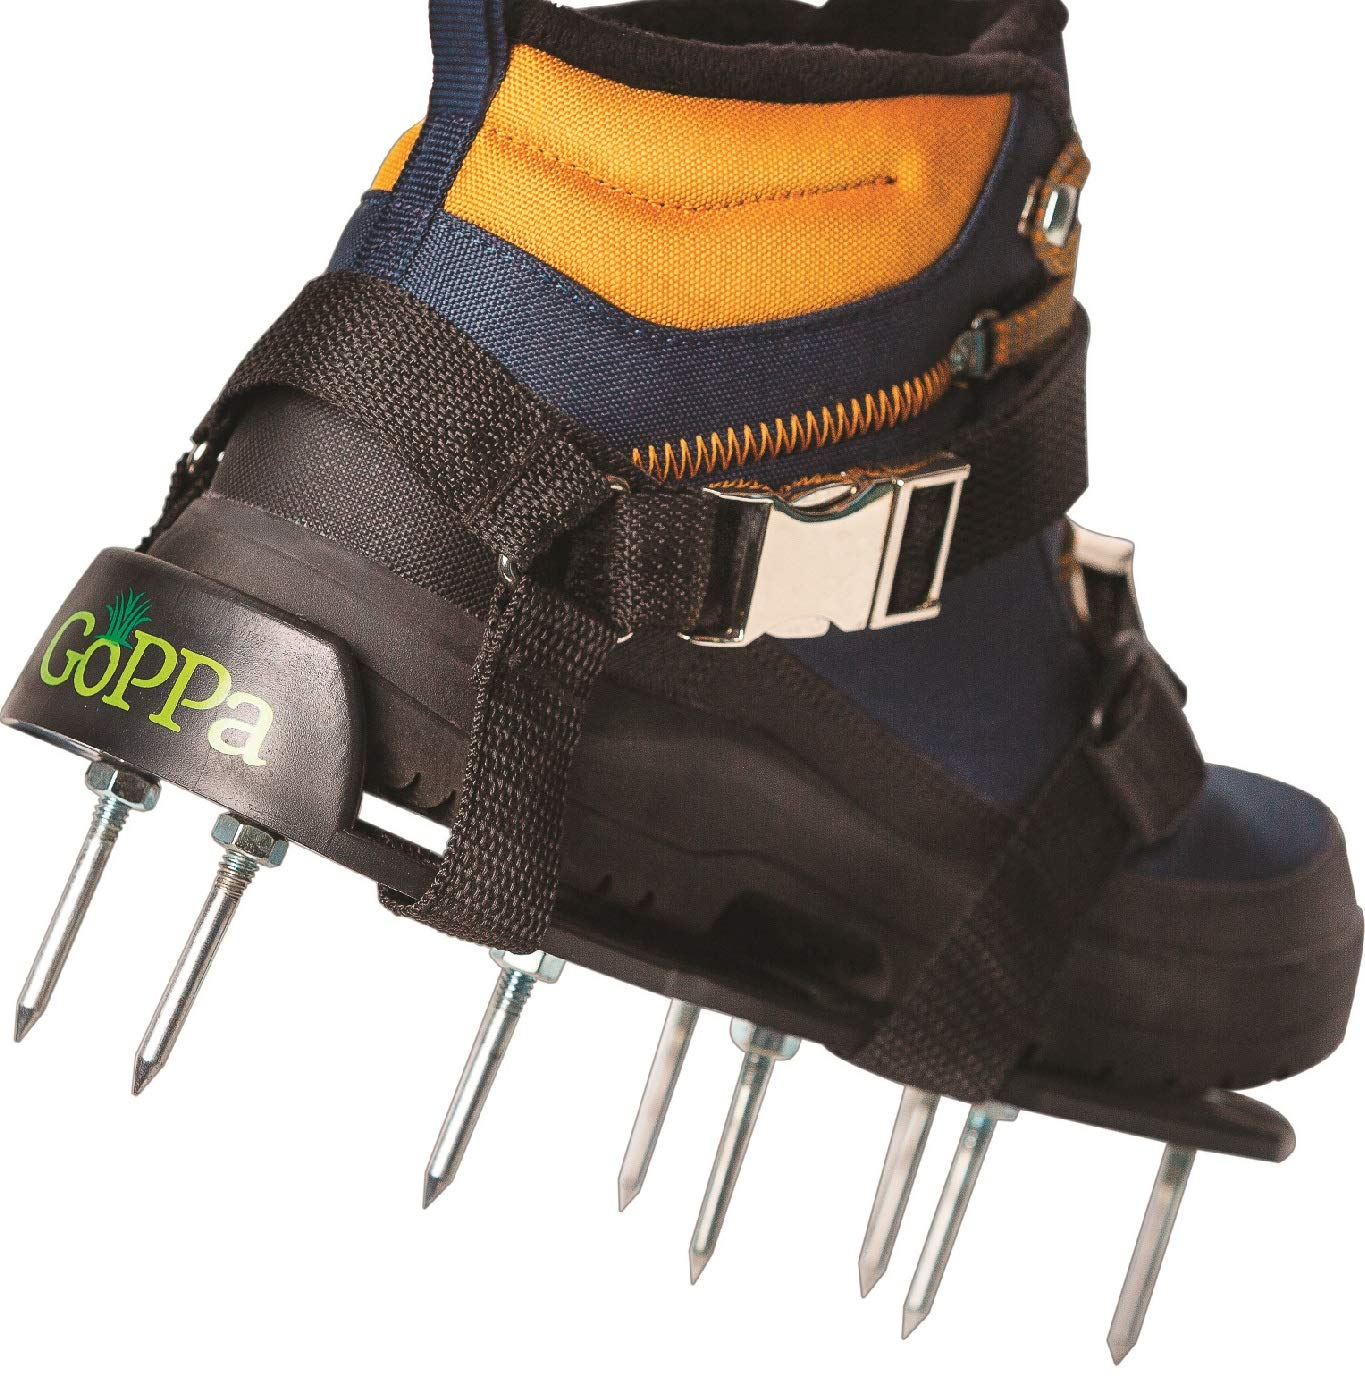 GoPPa Lawn Aerator Shoes - Easiest to USE Lawn Aerator Sandal, You only FIT Once. Ready for aerating Your Yard, Lawn, Roots & Grass - Comfort Design by GoPPa